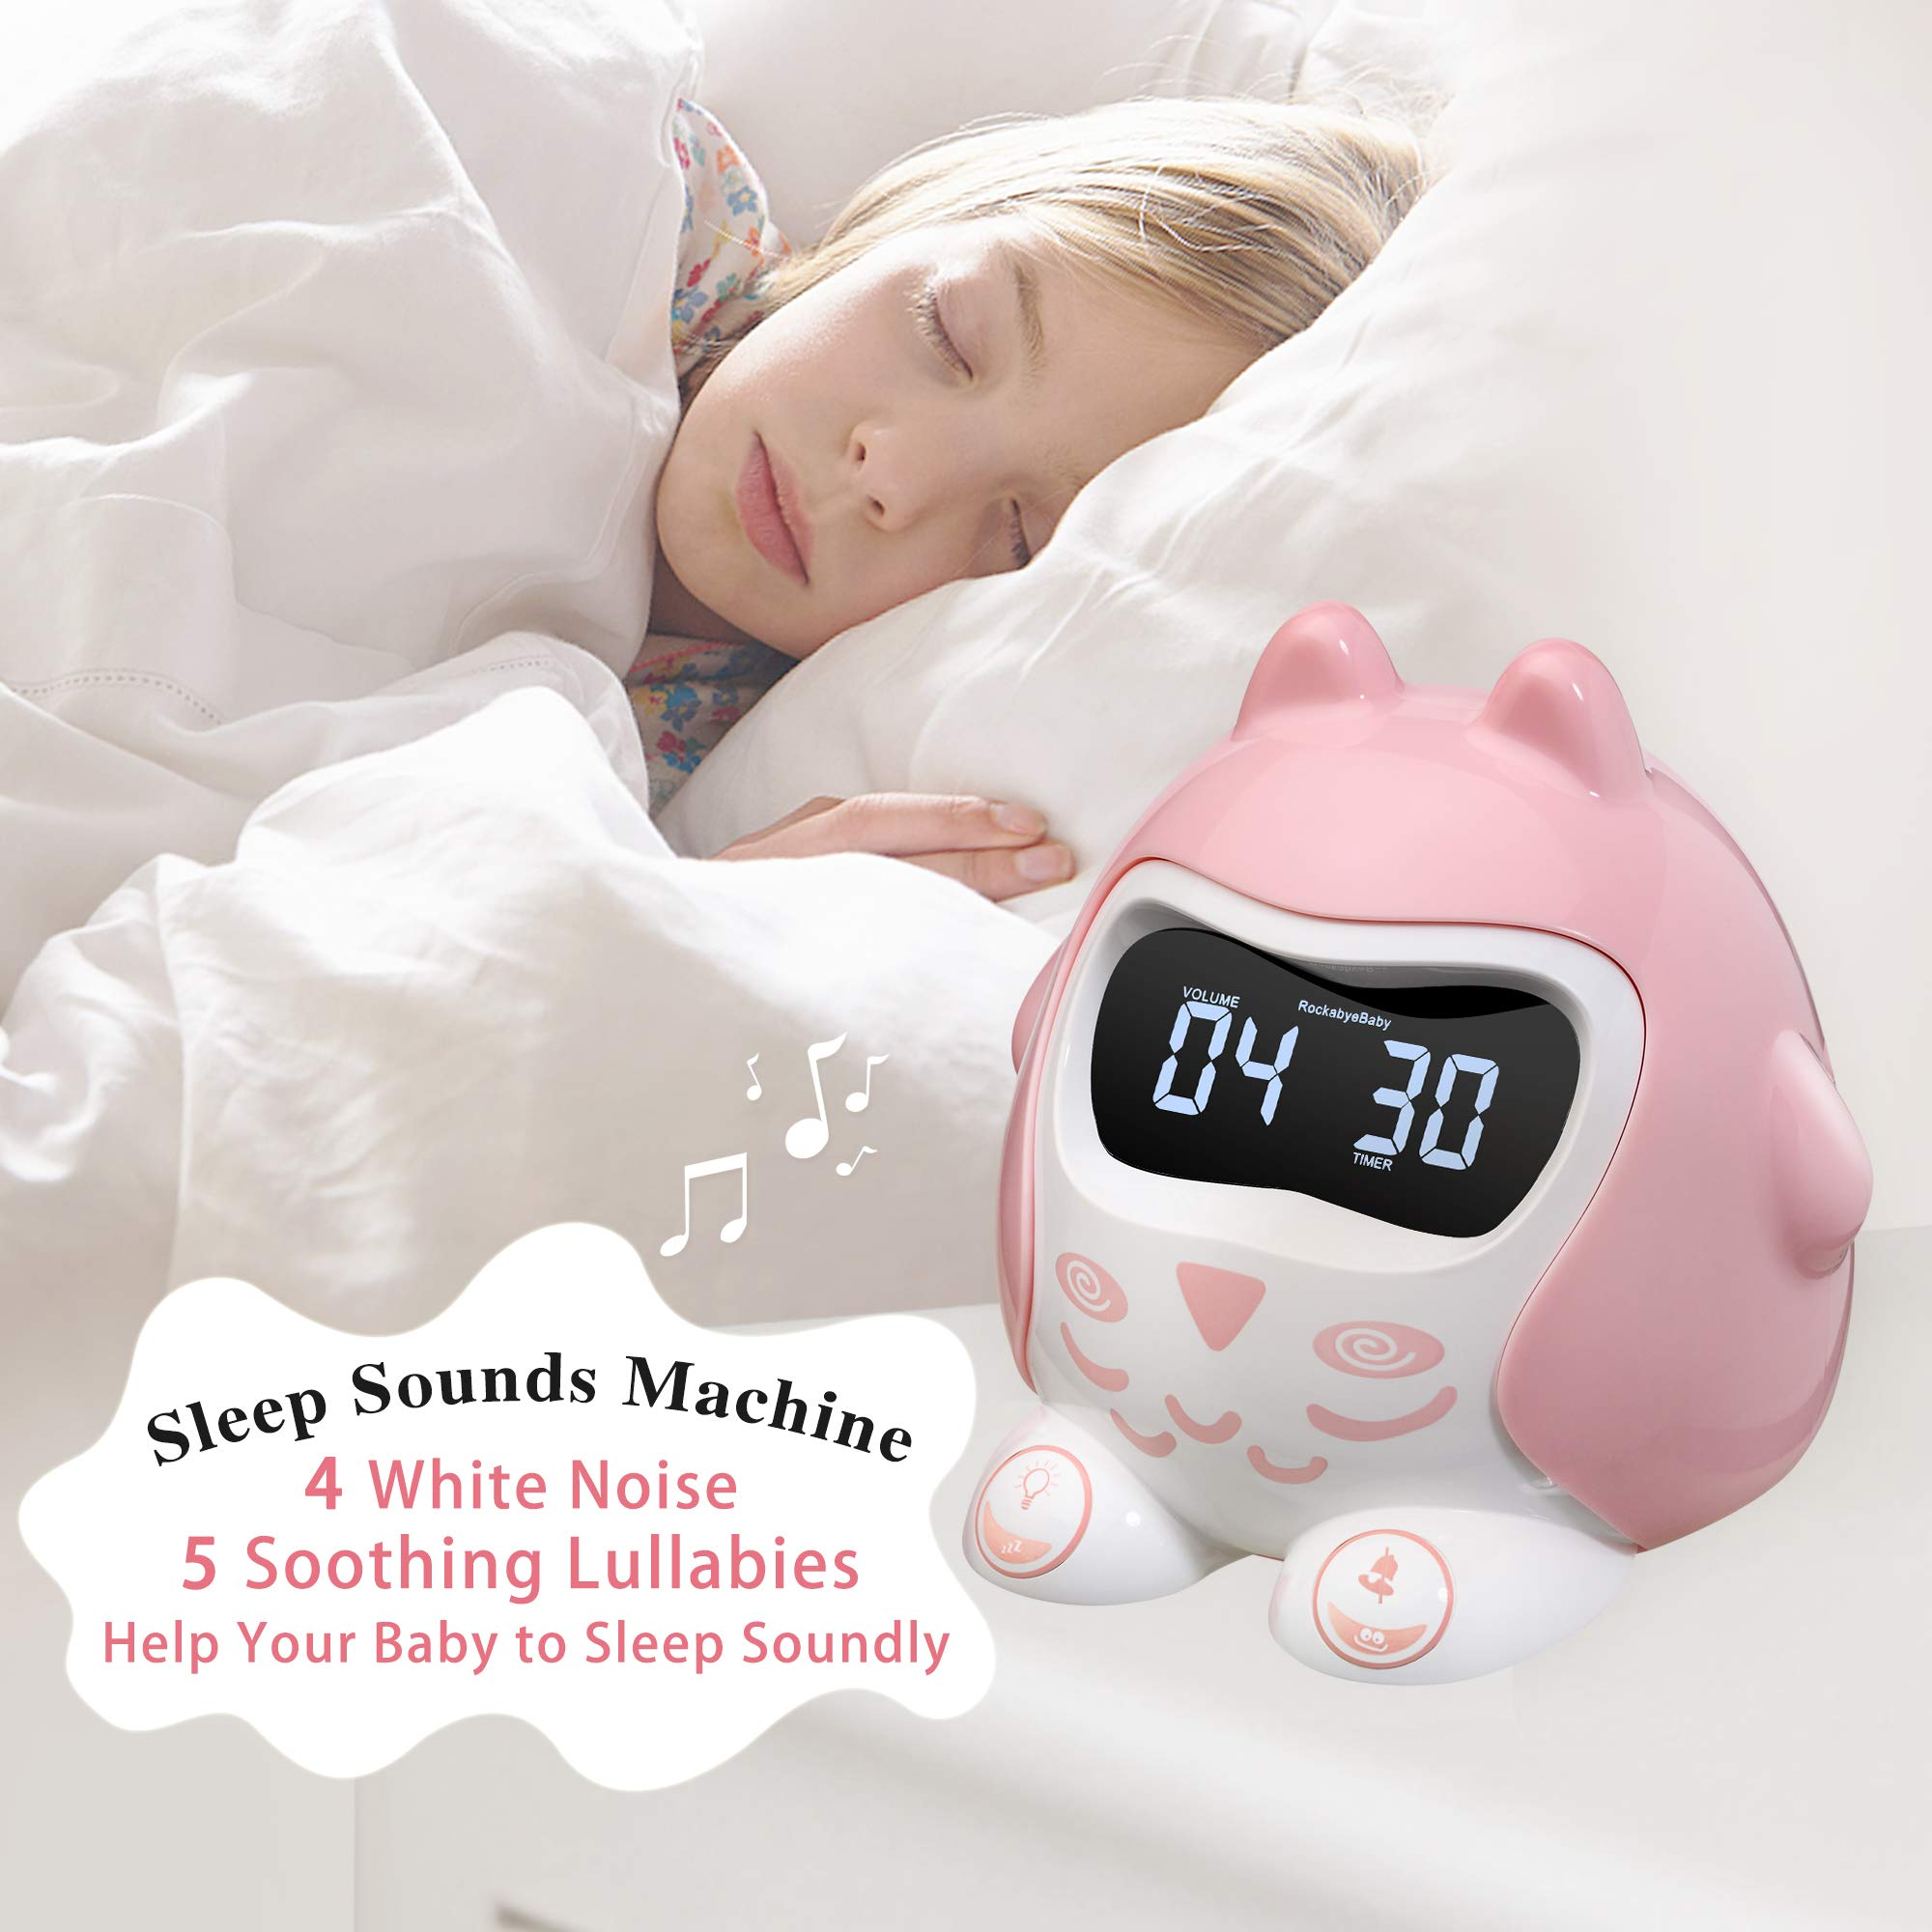 ROCAM Alarm Clock for Kids Bedrooms, Children's Sleep Trainer, Toddler Clock, Plug in Kids Alarm Clock with 7 Color Changing Night Light and Sleep Sounds Machine, Battery Operated and Nap Timer